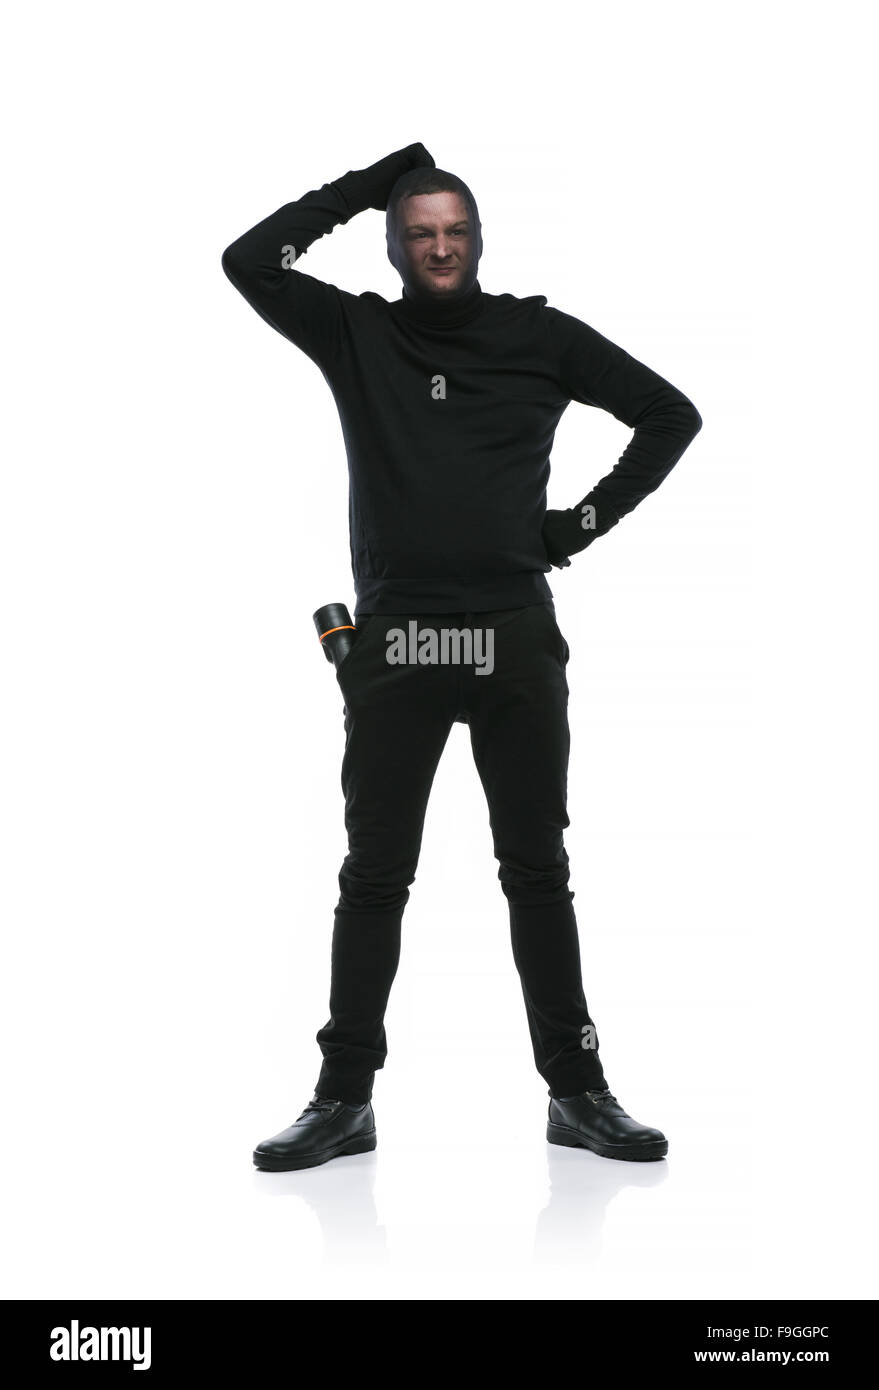 Thief in action with balaclava on his face, dressed in black. Studio shot on white background. - Stock Image